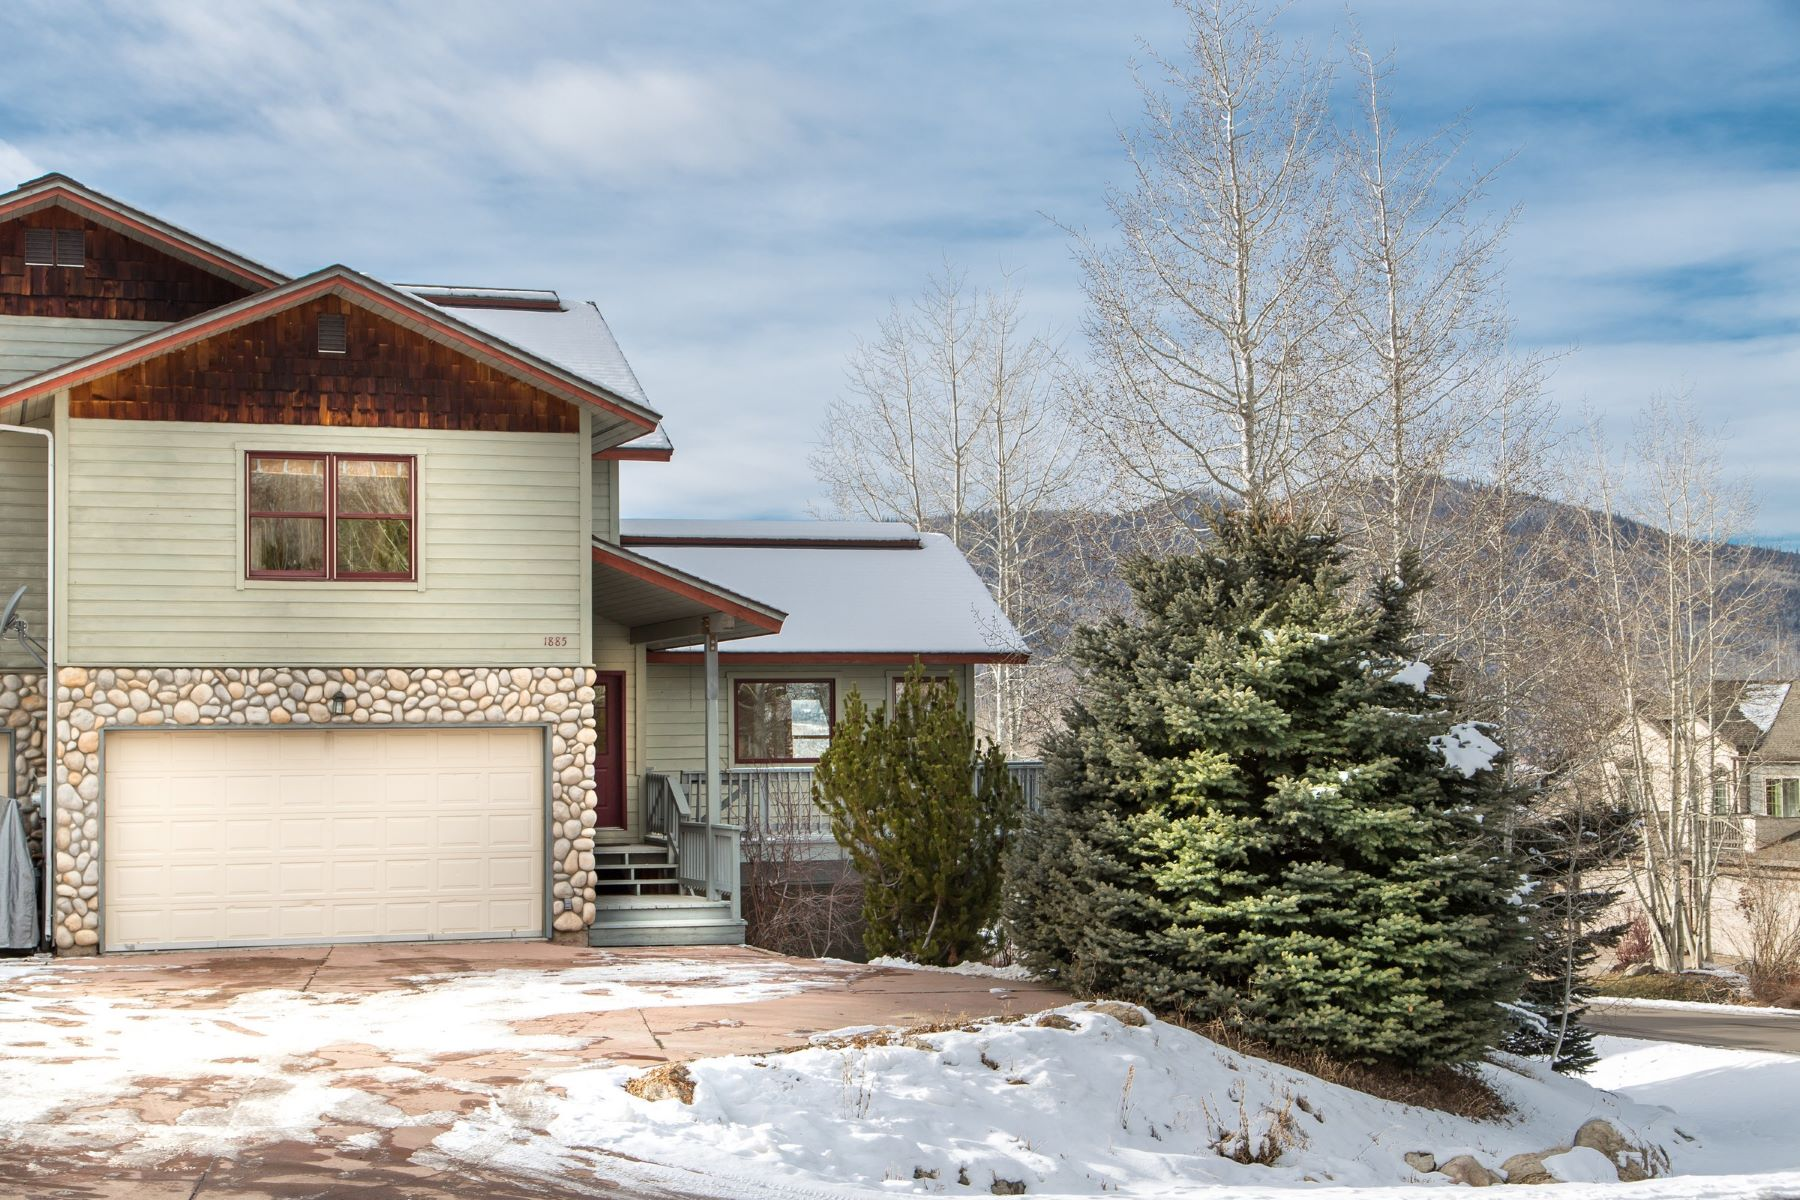 Townhouse for Sale at Quiet Mountain Neighborhood 1885 Hunters Drive Steamboat Springs, Colorado 80487 United States